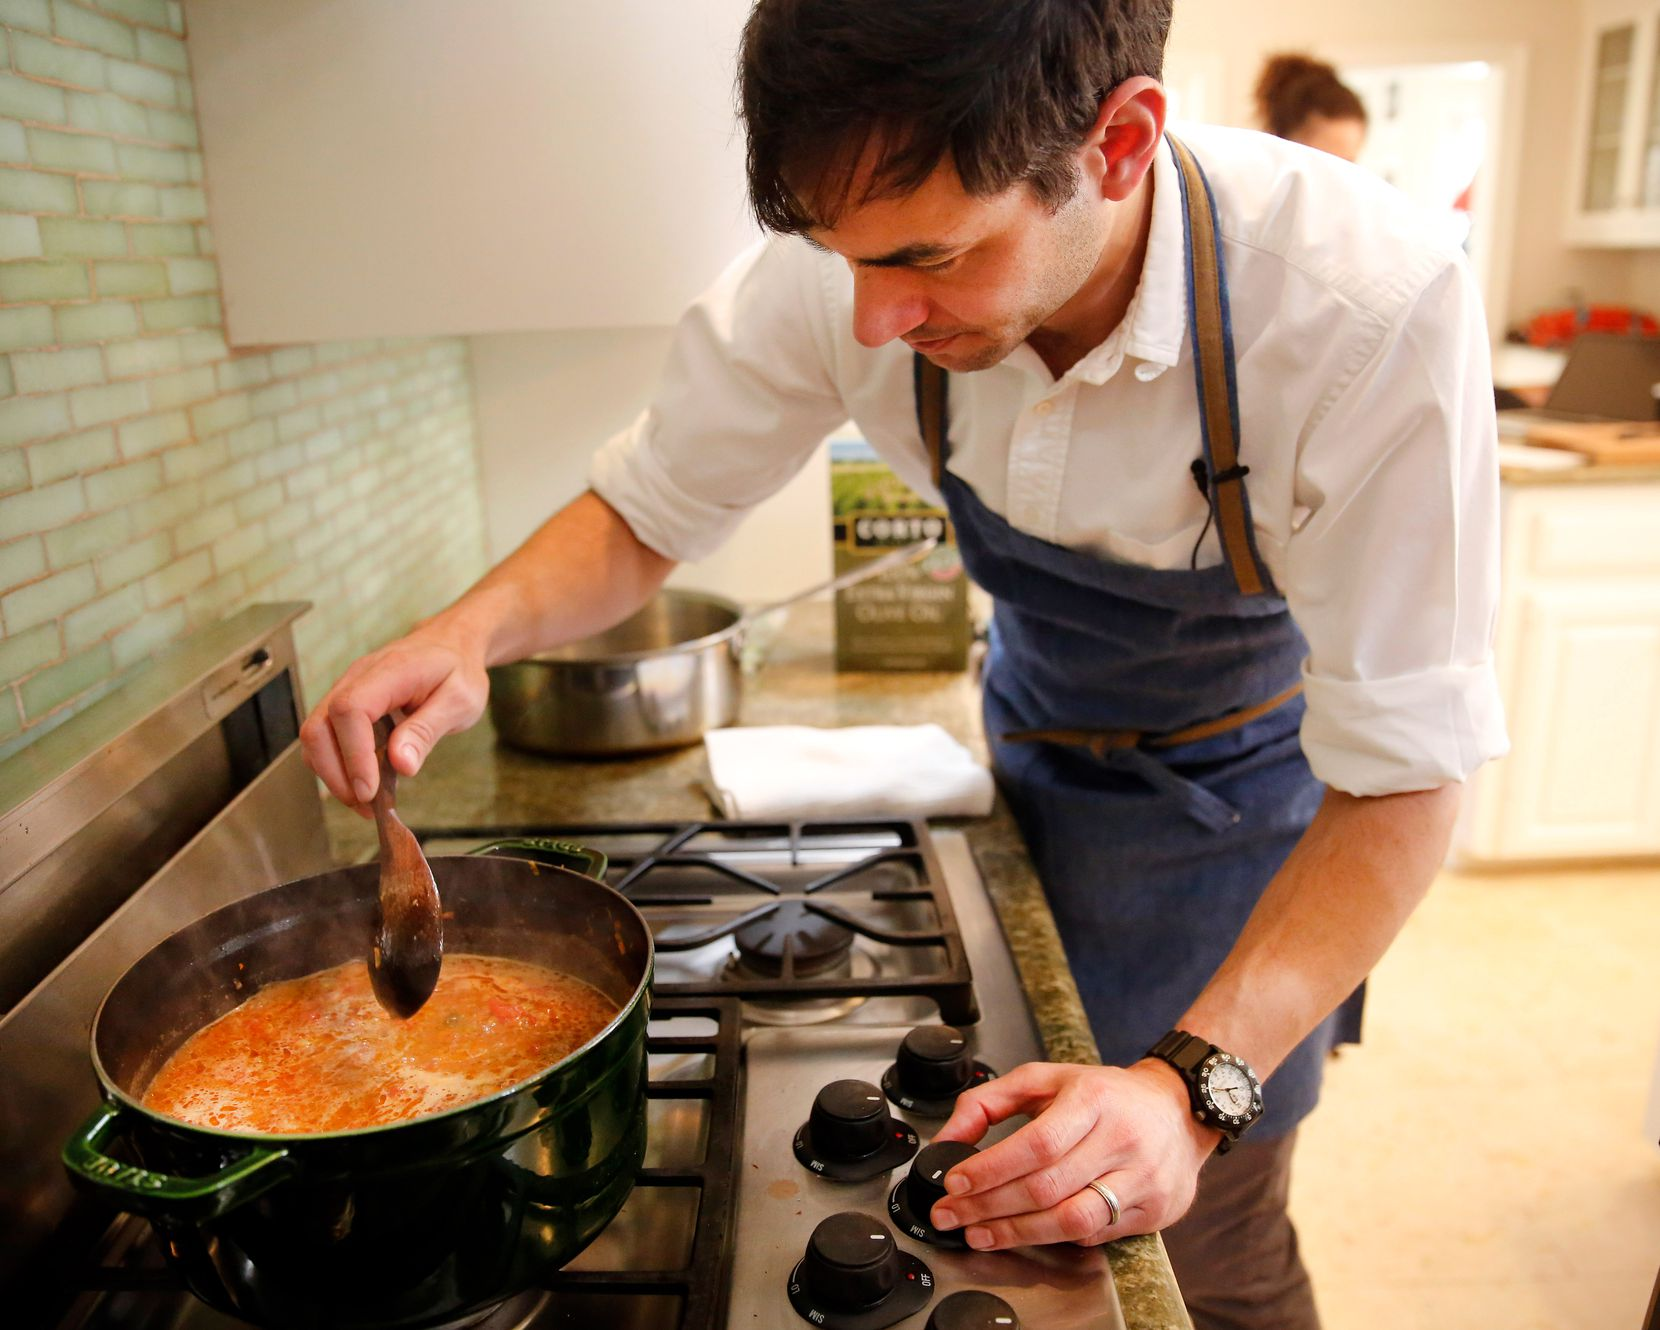 Restaurant owner and chef Julian Barsotti stirs bolognese sauce for the elaborate, multi-layered Italian dish known as a timpano at his Highland Park home. (Tom Fox/The Dallas Morning News)